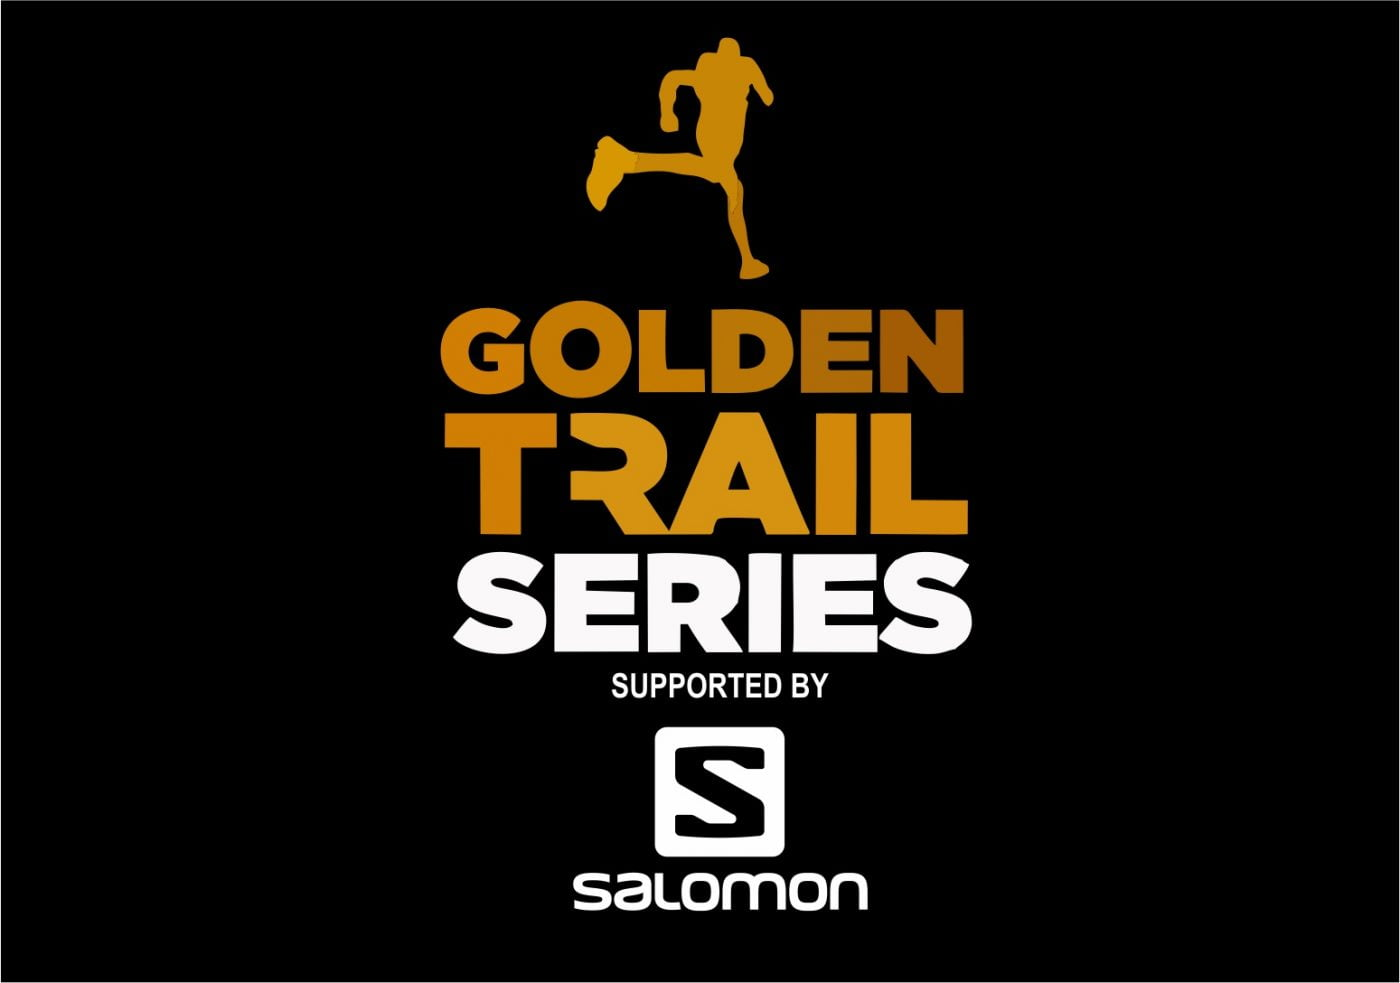 """3f2b63254 SALOMON ANNOUNCES NEW """"GOLDEN TRAILS SERIES"""" FOR TRAIL RUNNING – The ..."""